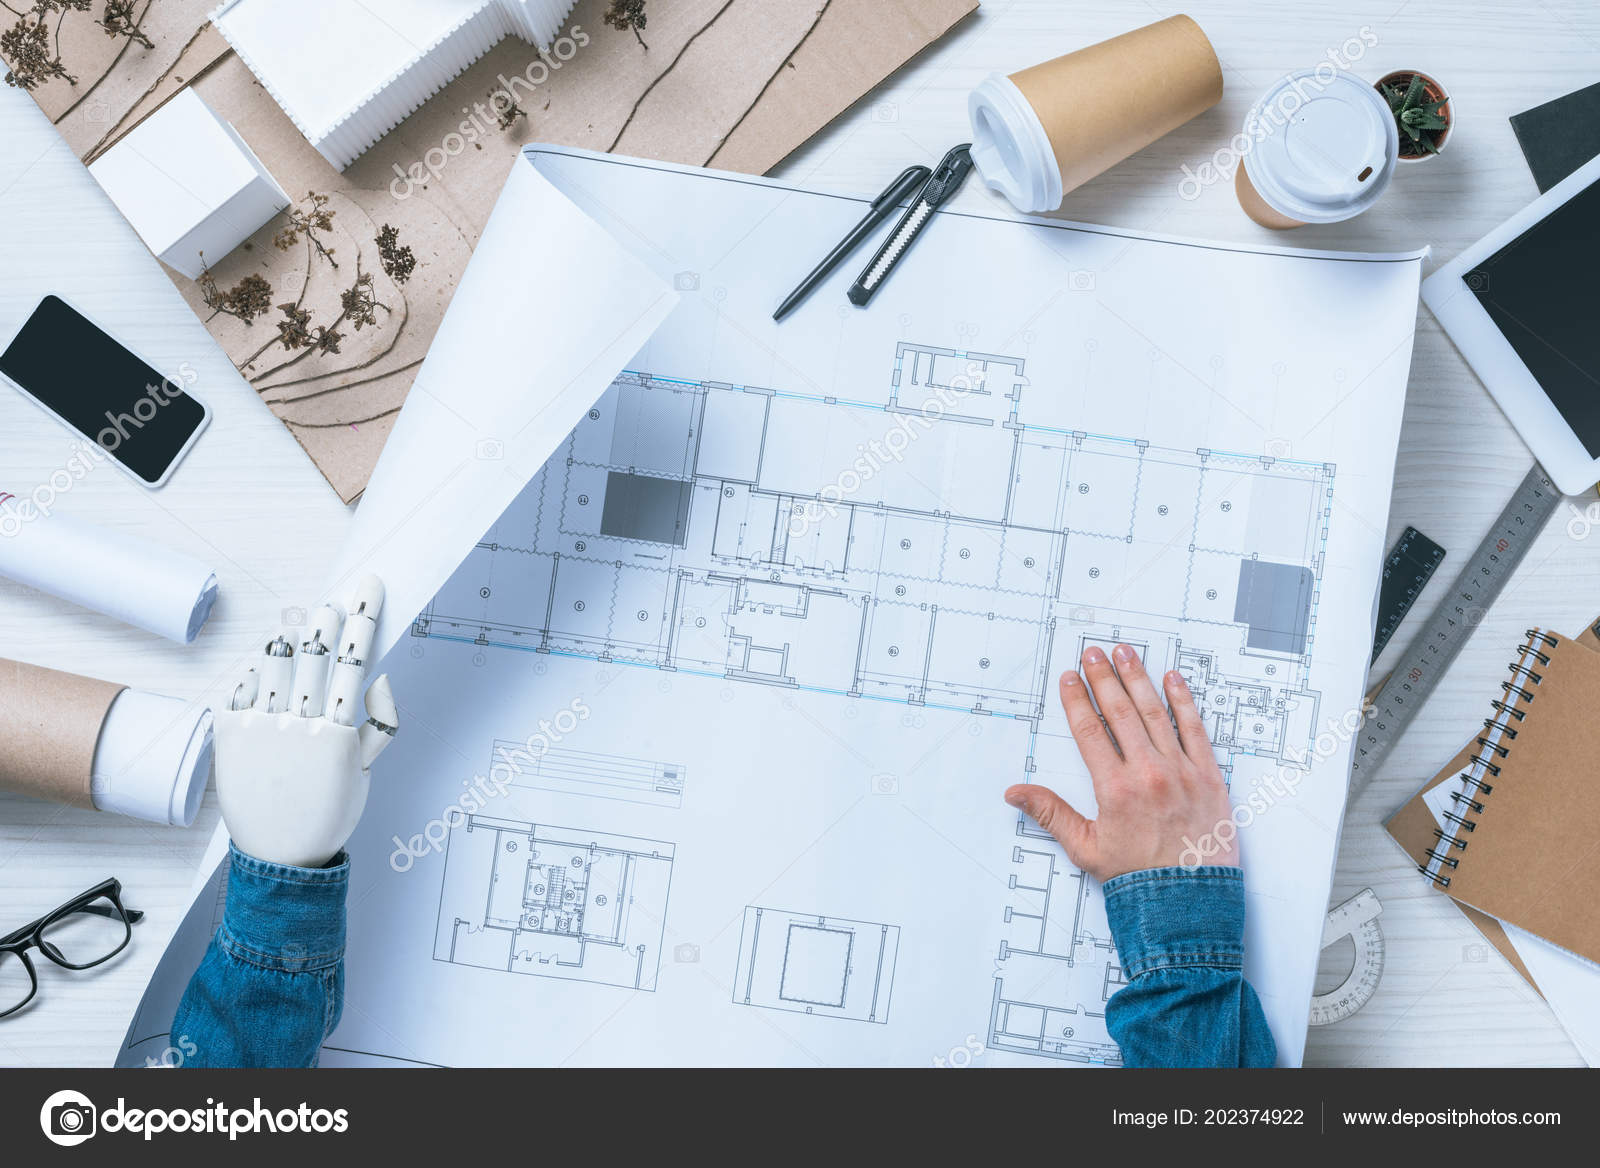 Cropped image male architect prosthetic arm working blueprint table cropped image male architect prosthetic arm working blueprint table smartphone foto de stock malvernweather Gallery